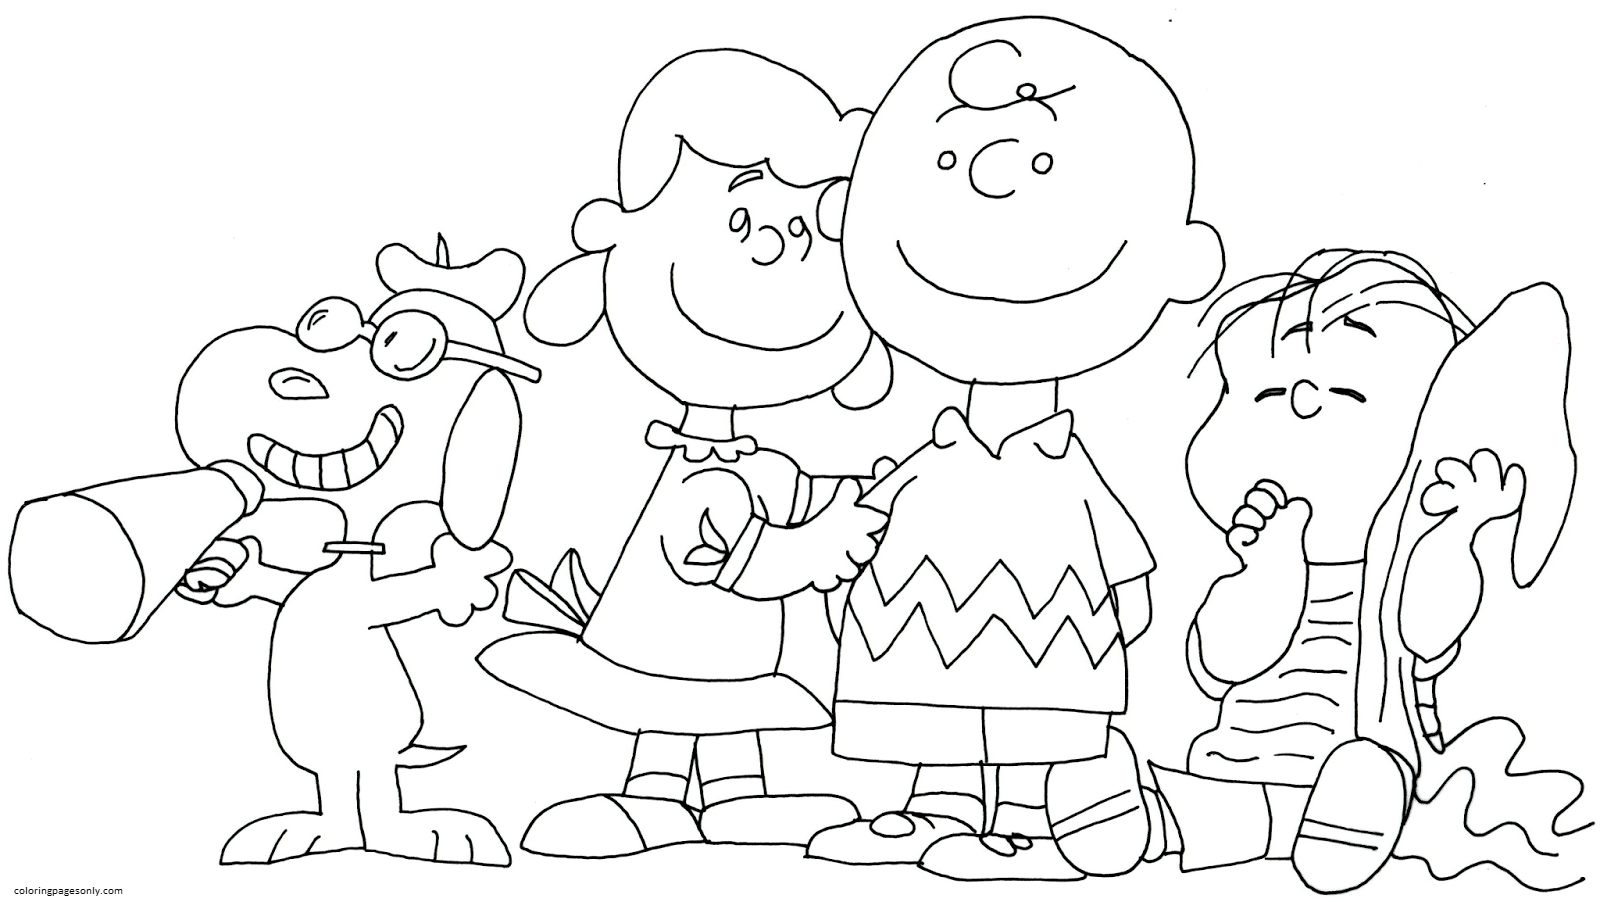 Charlie Brown Snoopy And Peanuts 1 Coloring Page